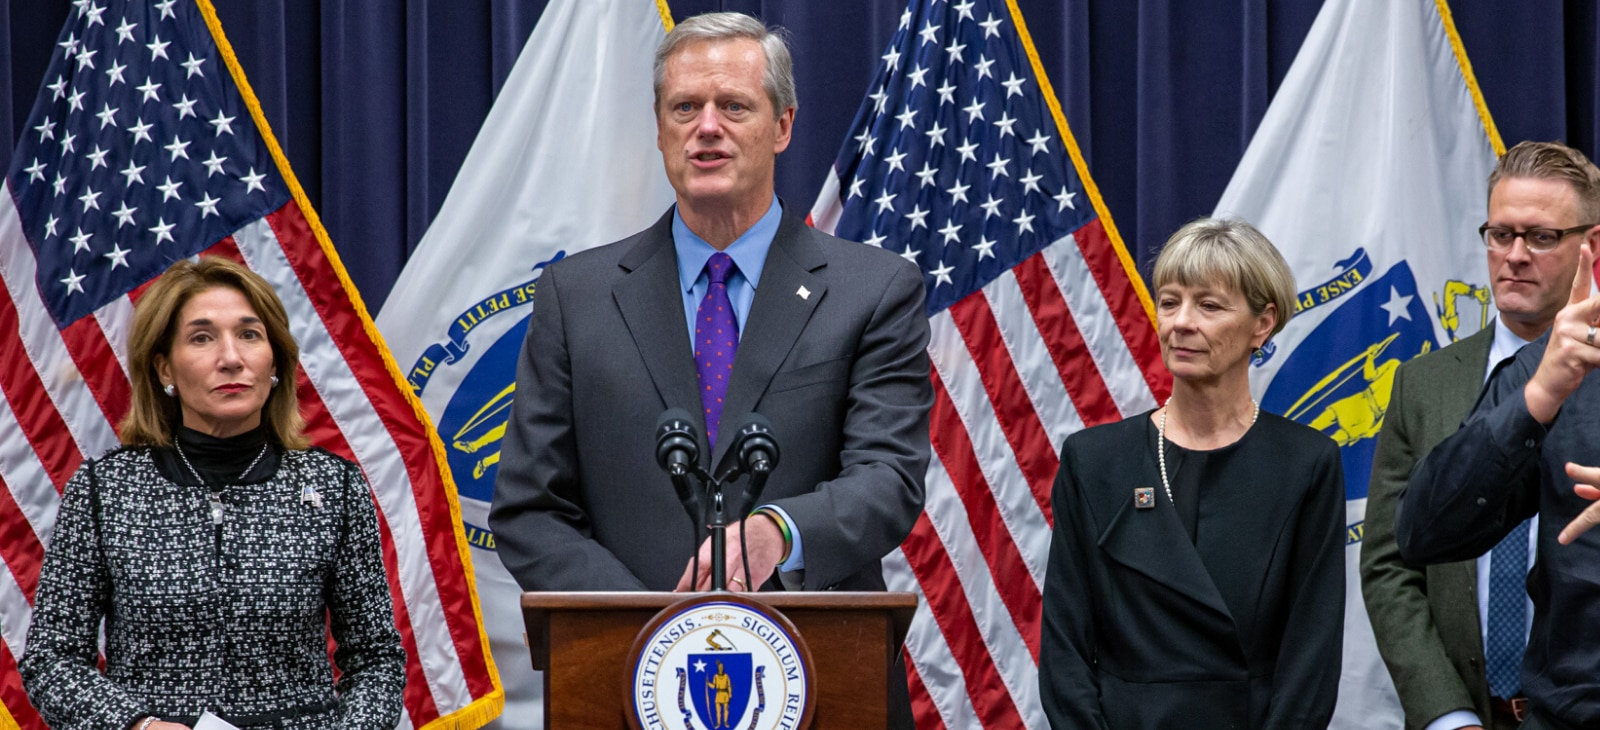 Baker-Polito Administration Announces Health Care Legislation Aimed at Addressing Key Challenges